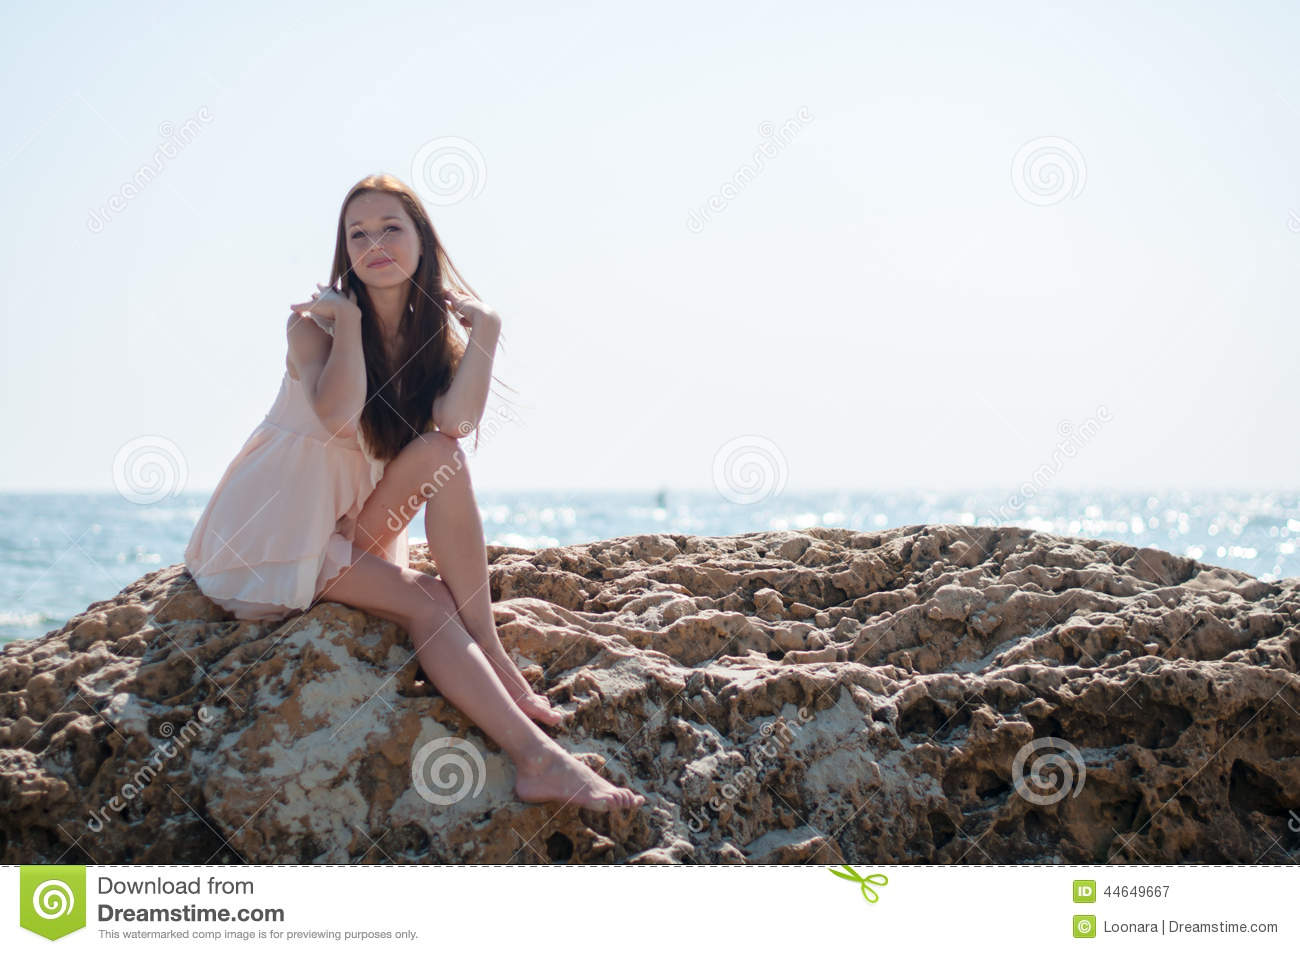 Belle pipe girl sitting on rock